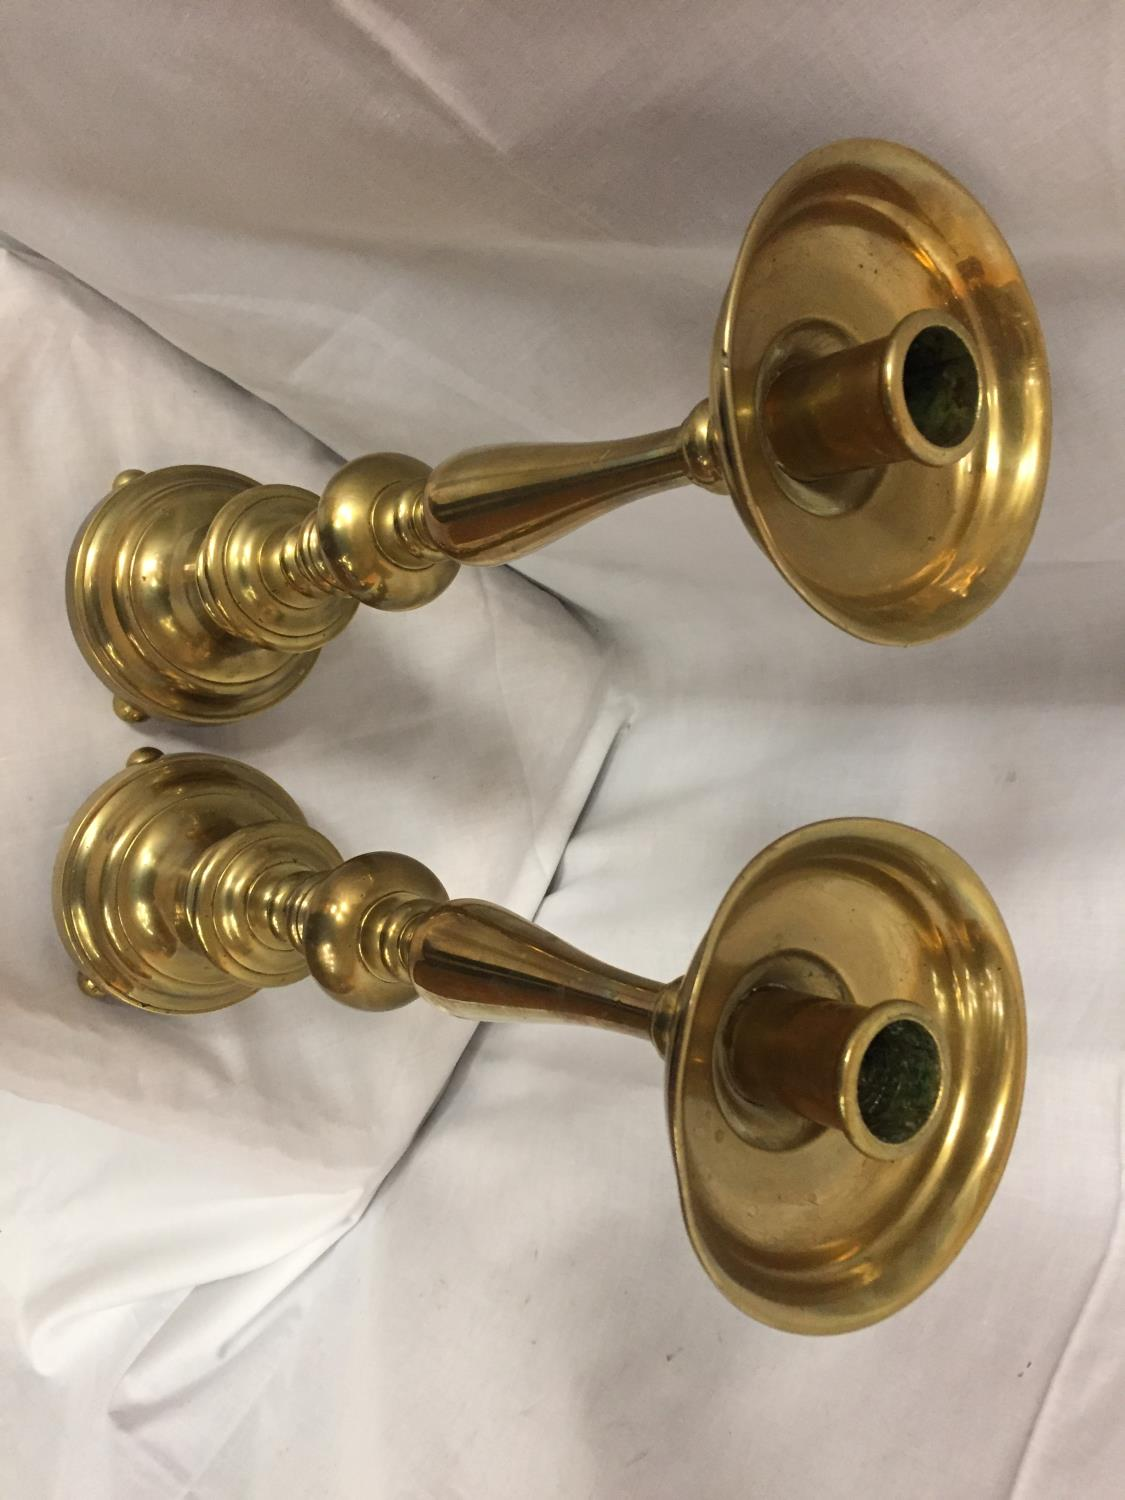 A PAIR OF TALL BRASS CANDLESTICKS HEIGHT 56CM - Image 3 of 3